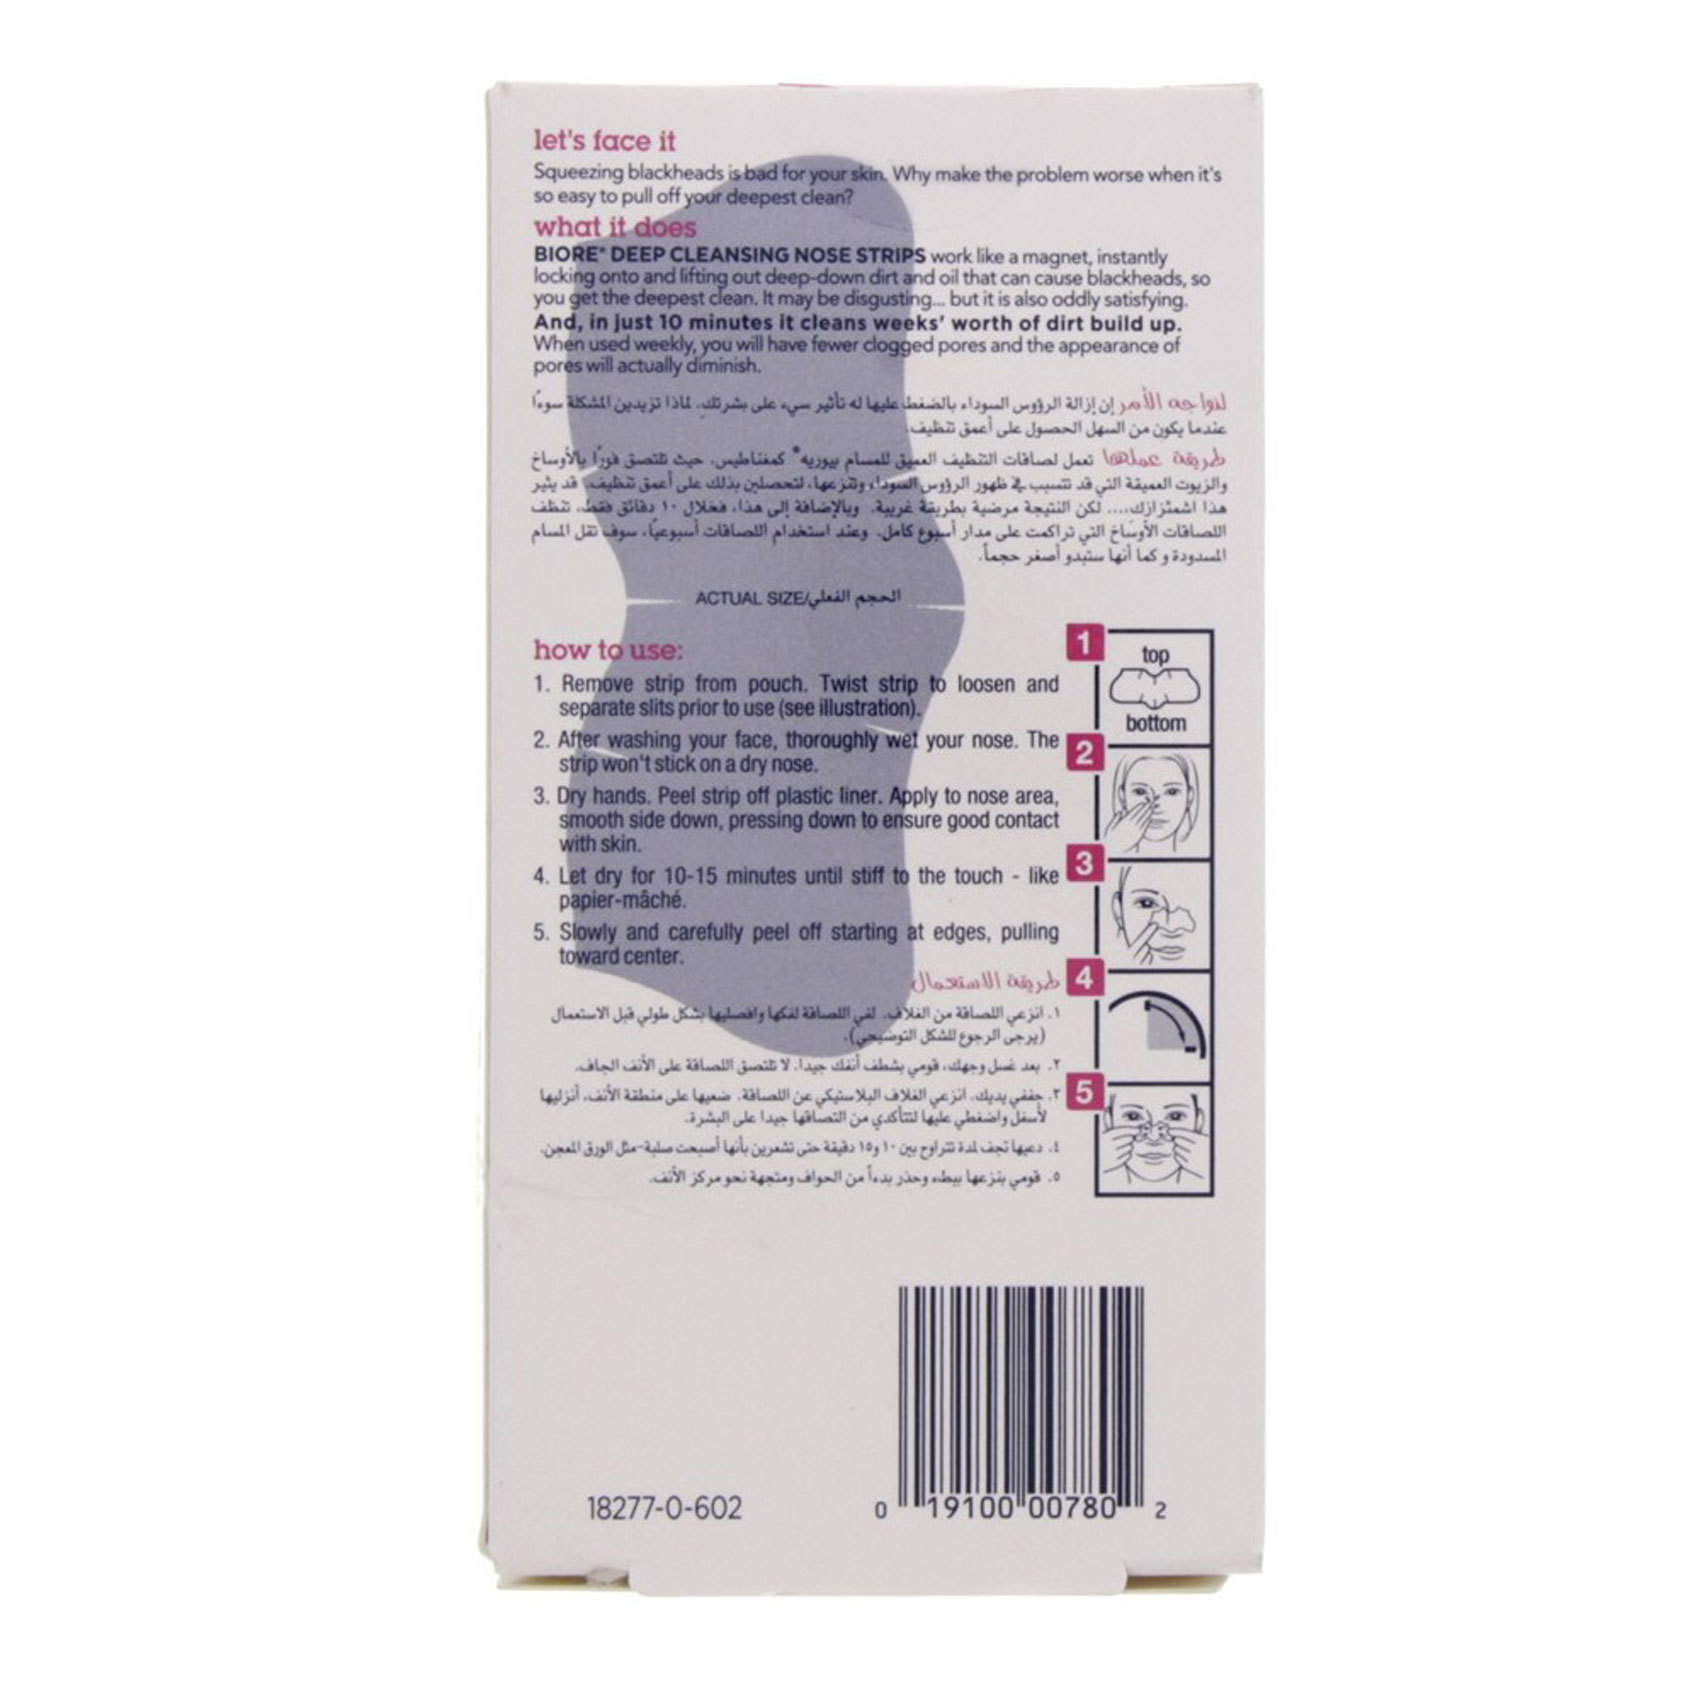 BIORE DEEP CLEANSING NOSE STRIPS X9